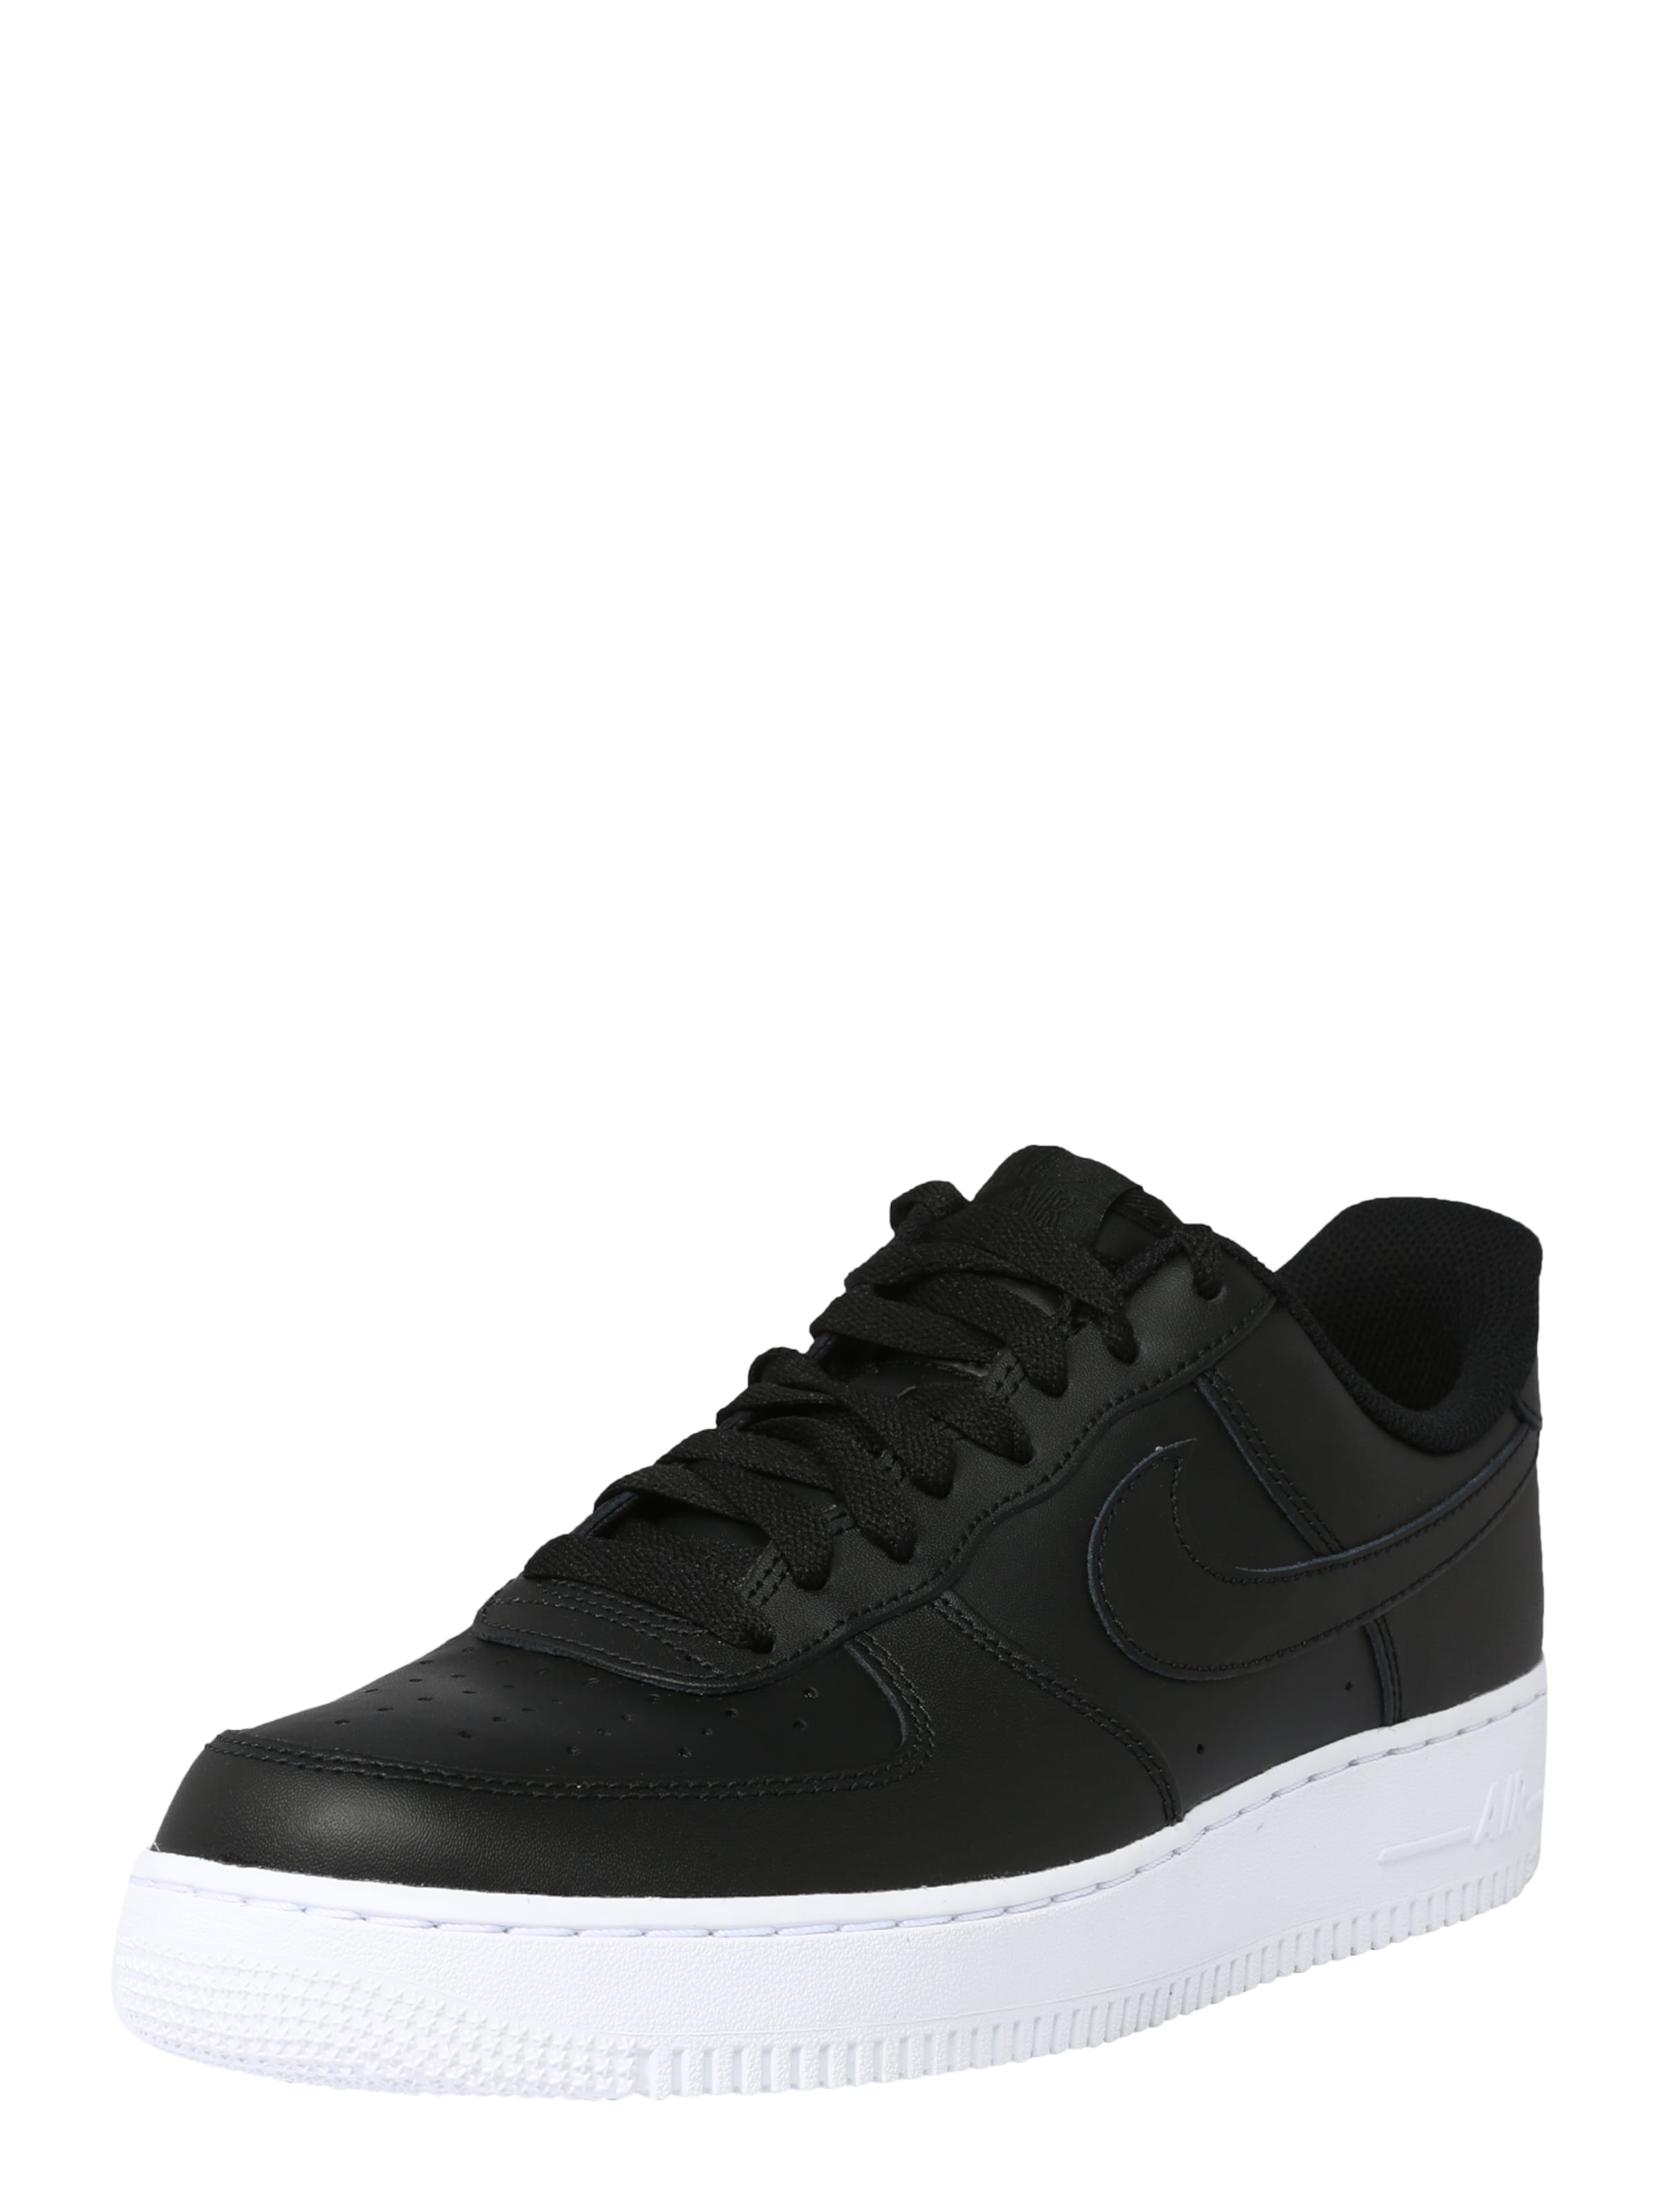 Sneaker Force 'air Nike 1' SchwarzWeiß In Sportswear KTl1cJF